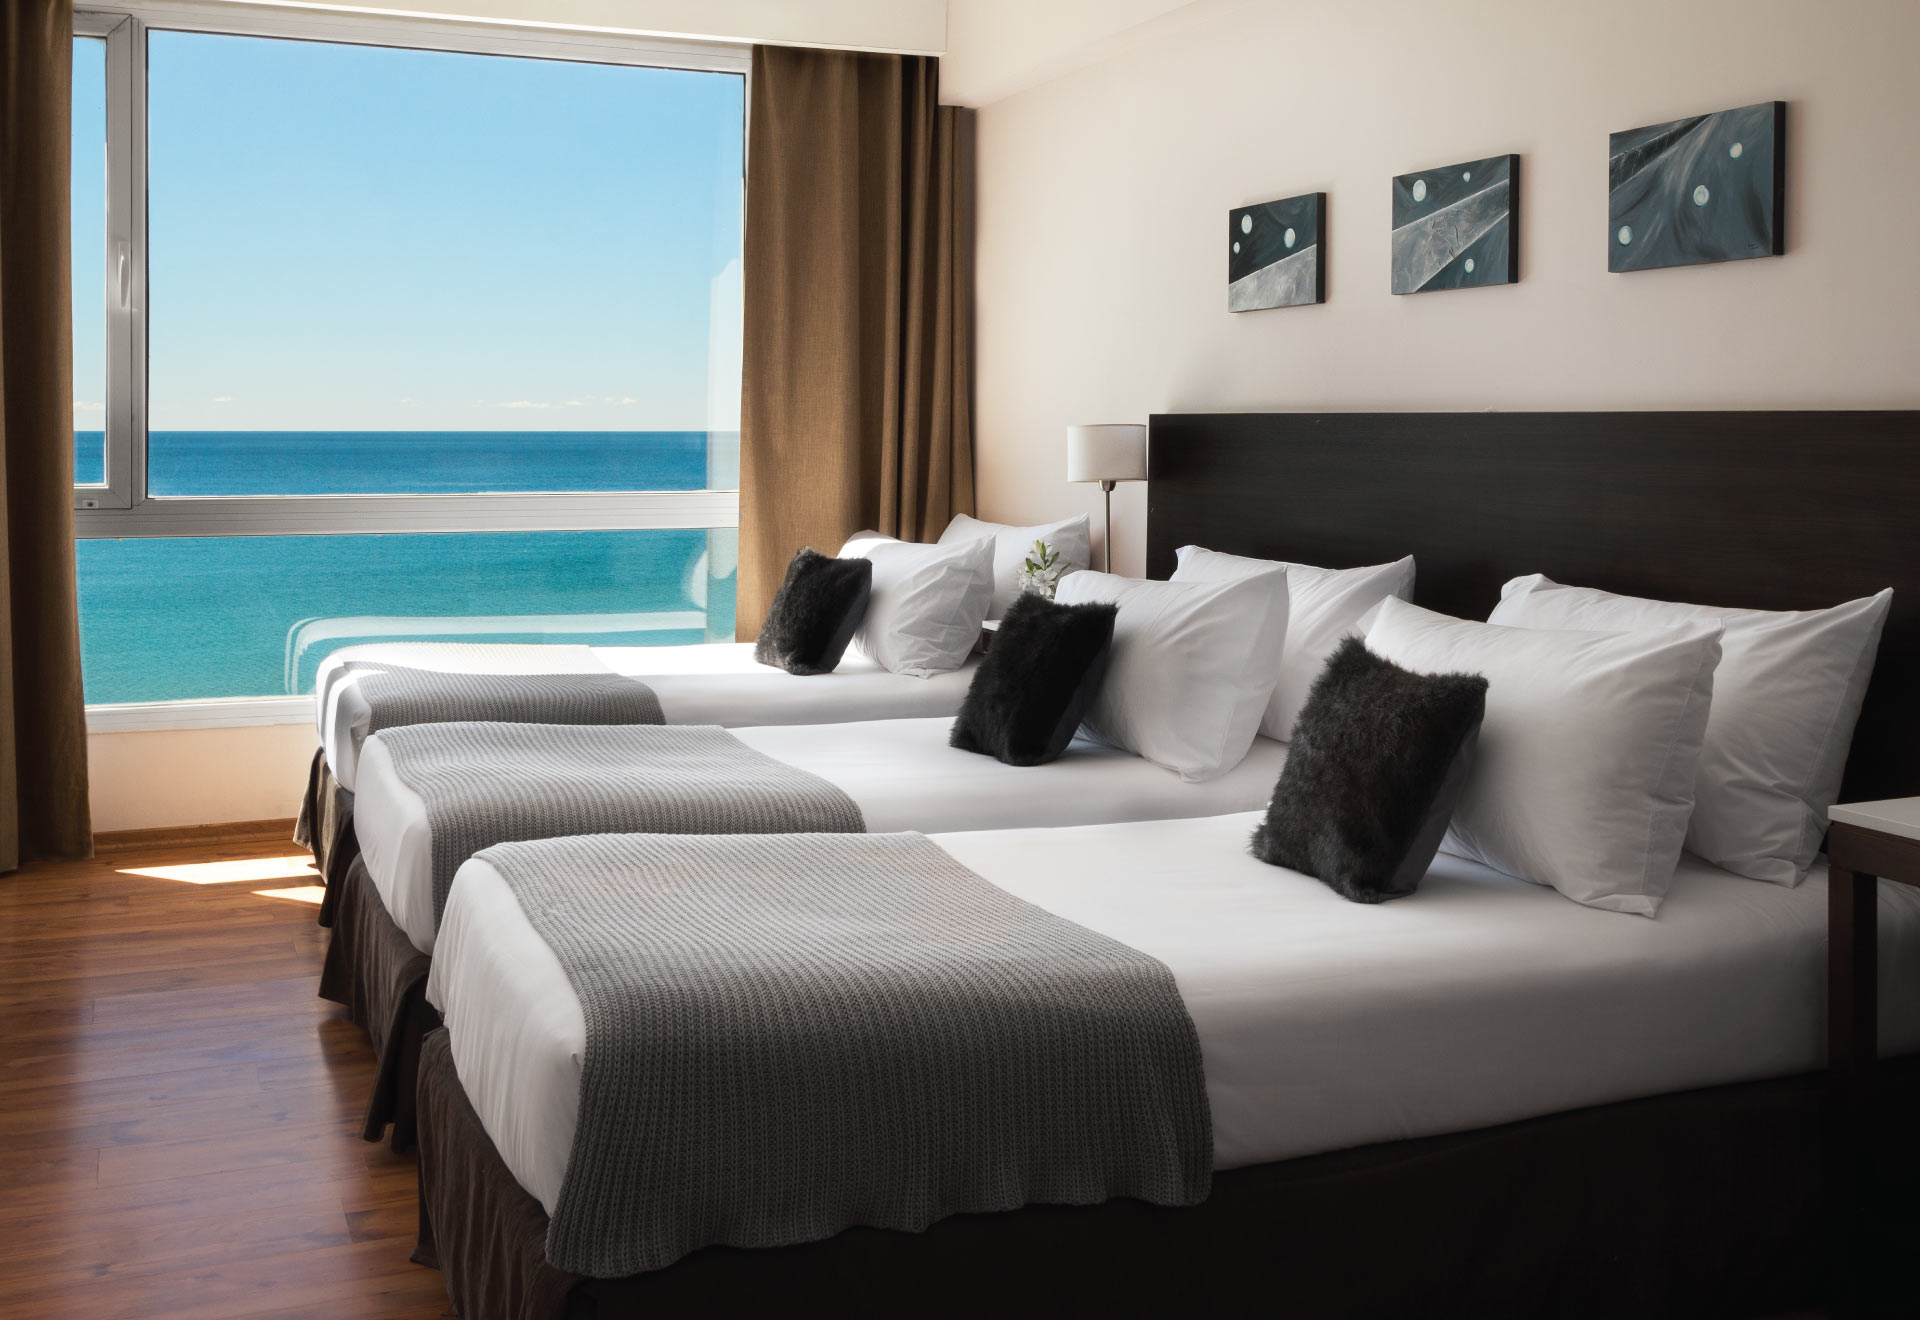 Dazzler Puerto Madryn Rooms